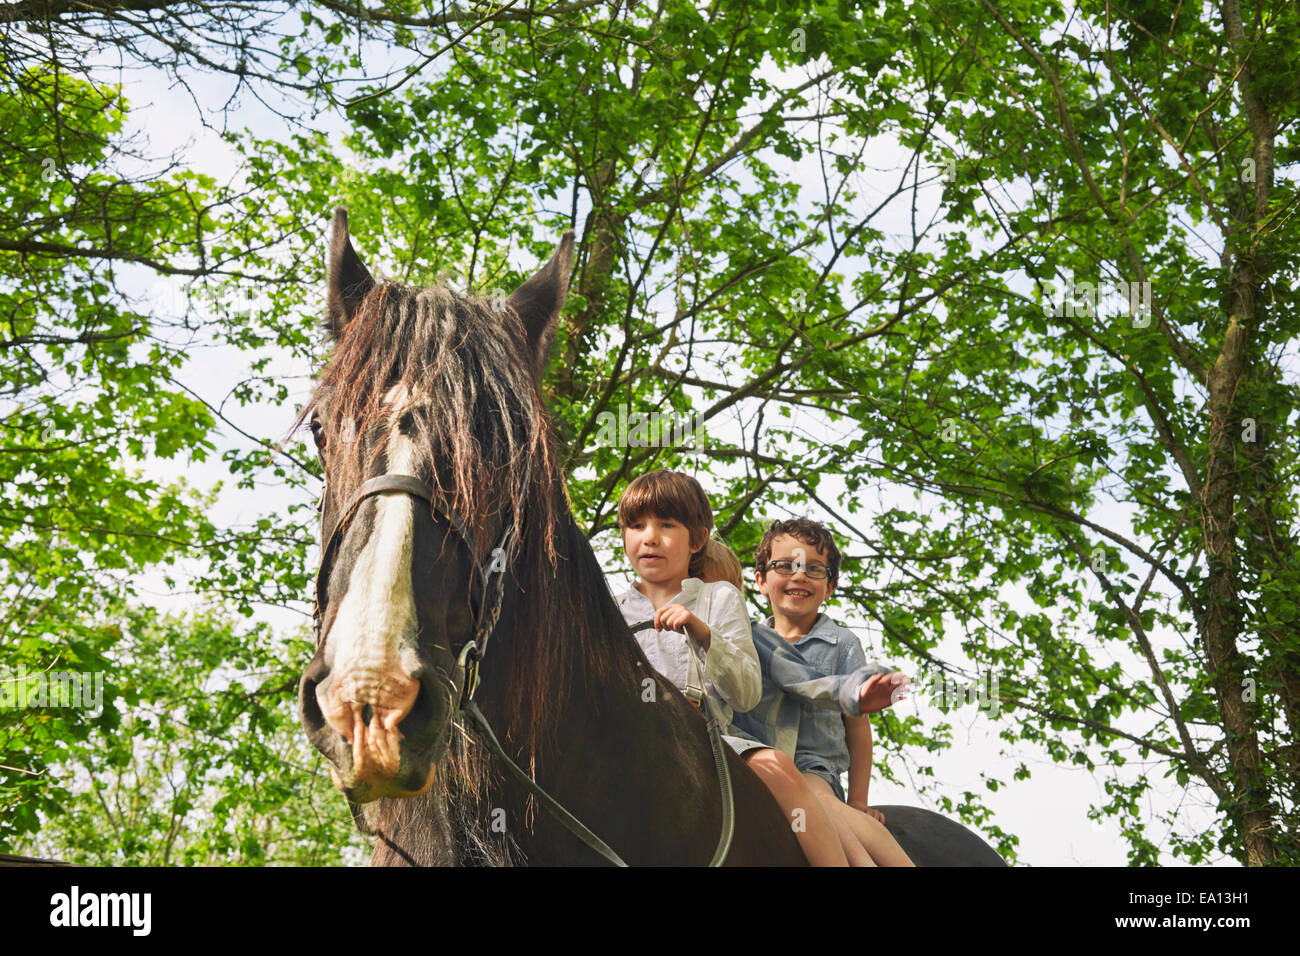 Low angle view of three boys riding on horse - Stock Image